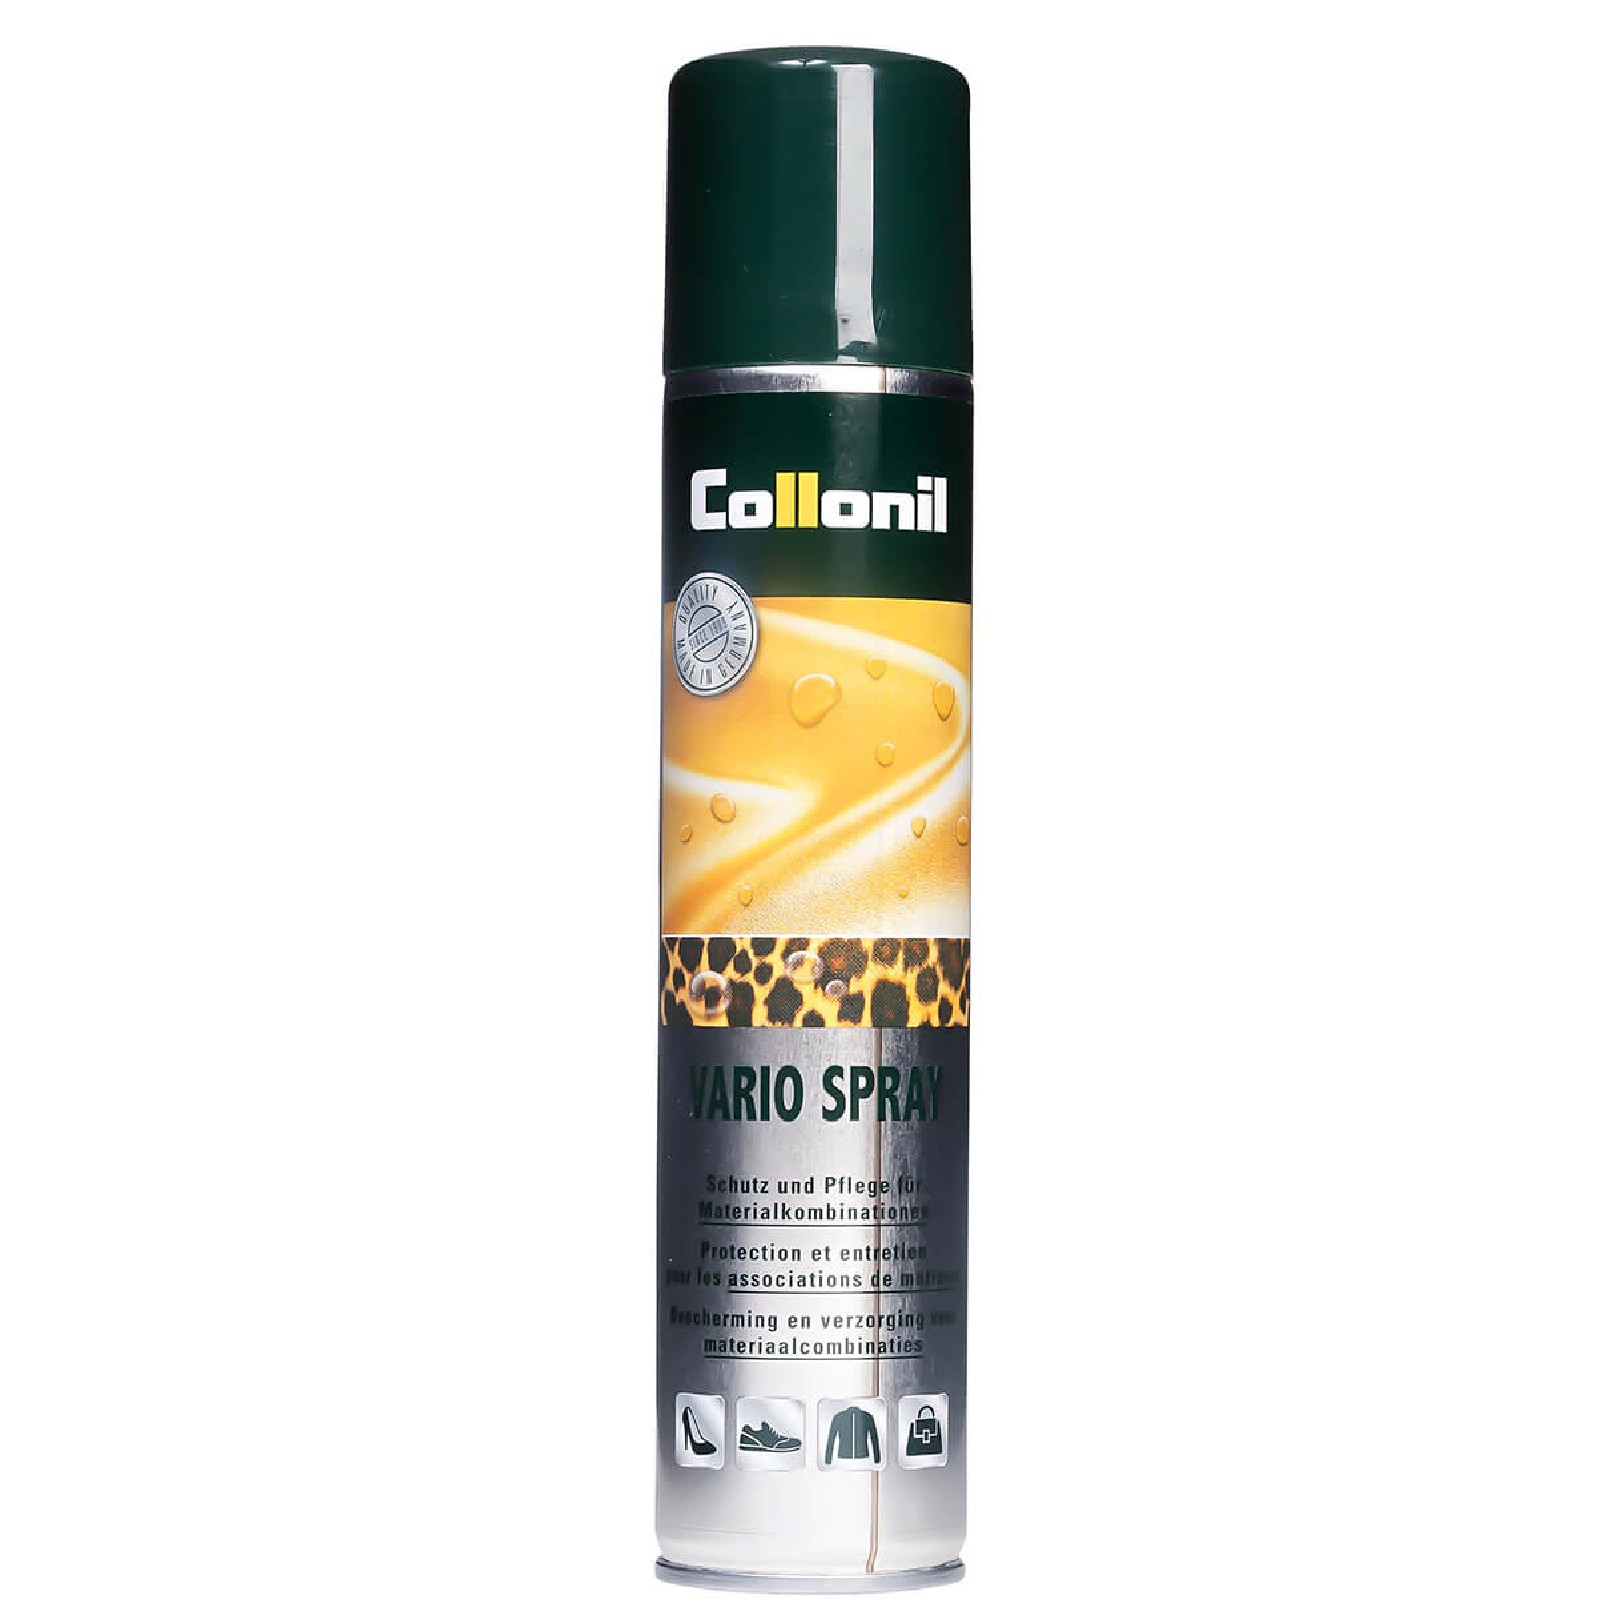 Collonil Vario 300 ml